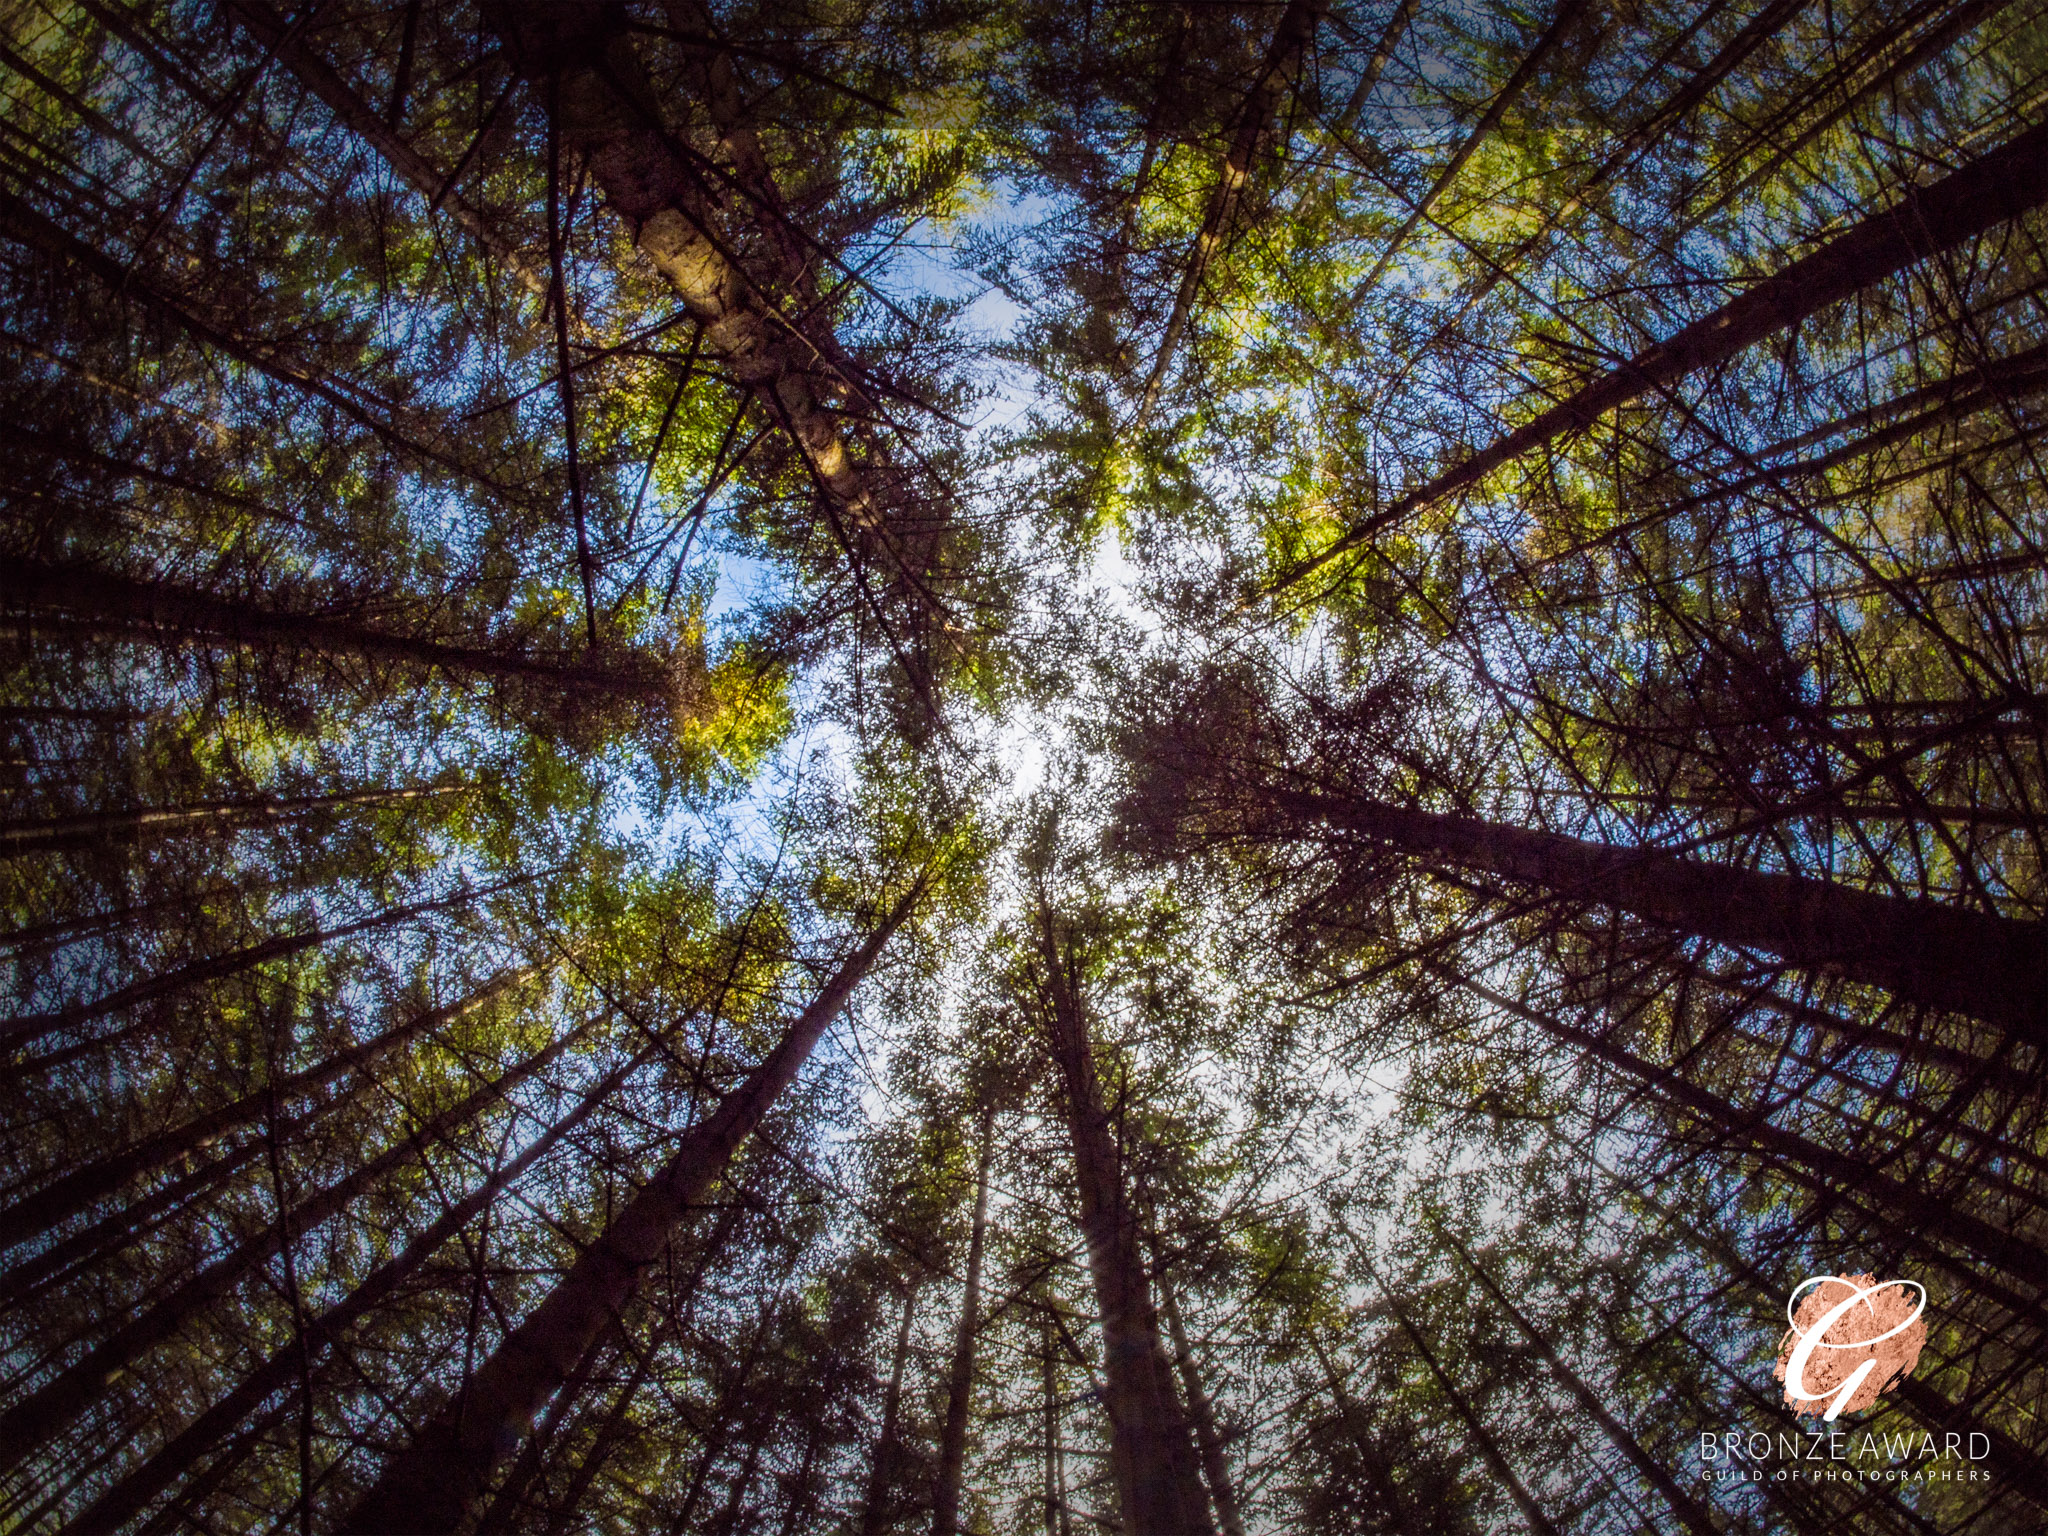 Looking straight up at the blue sky through a forest of fir trees.